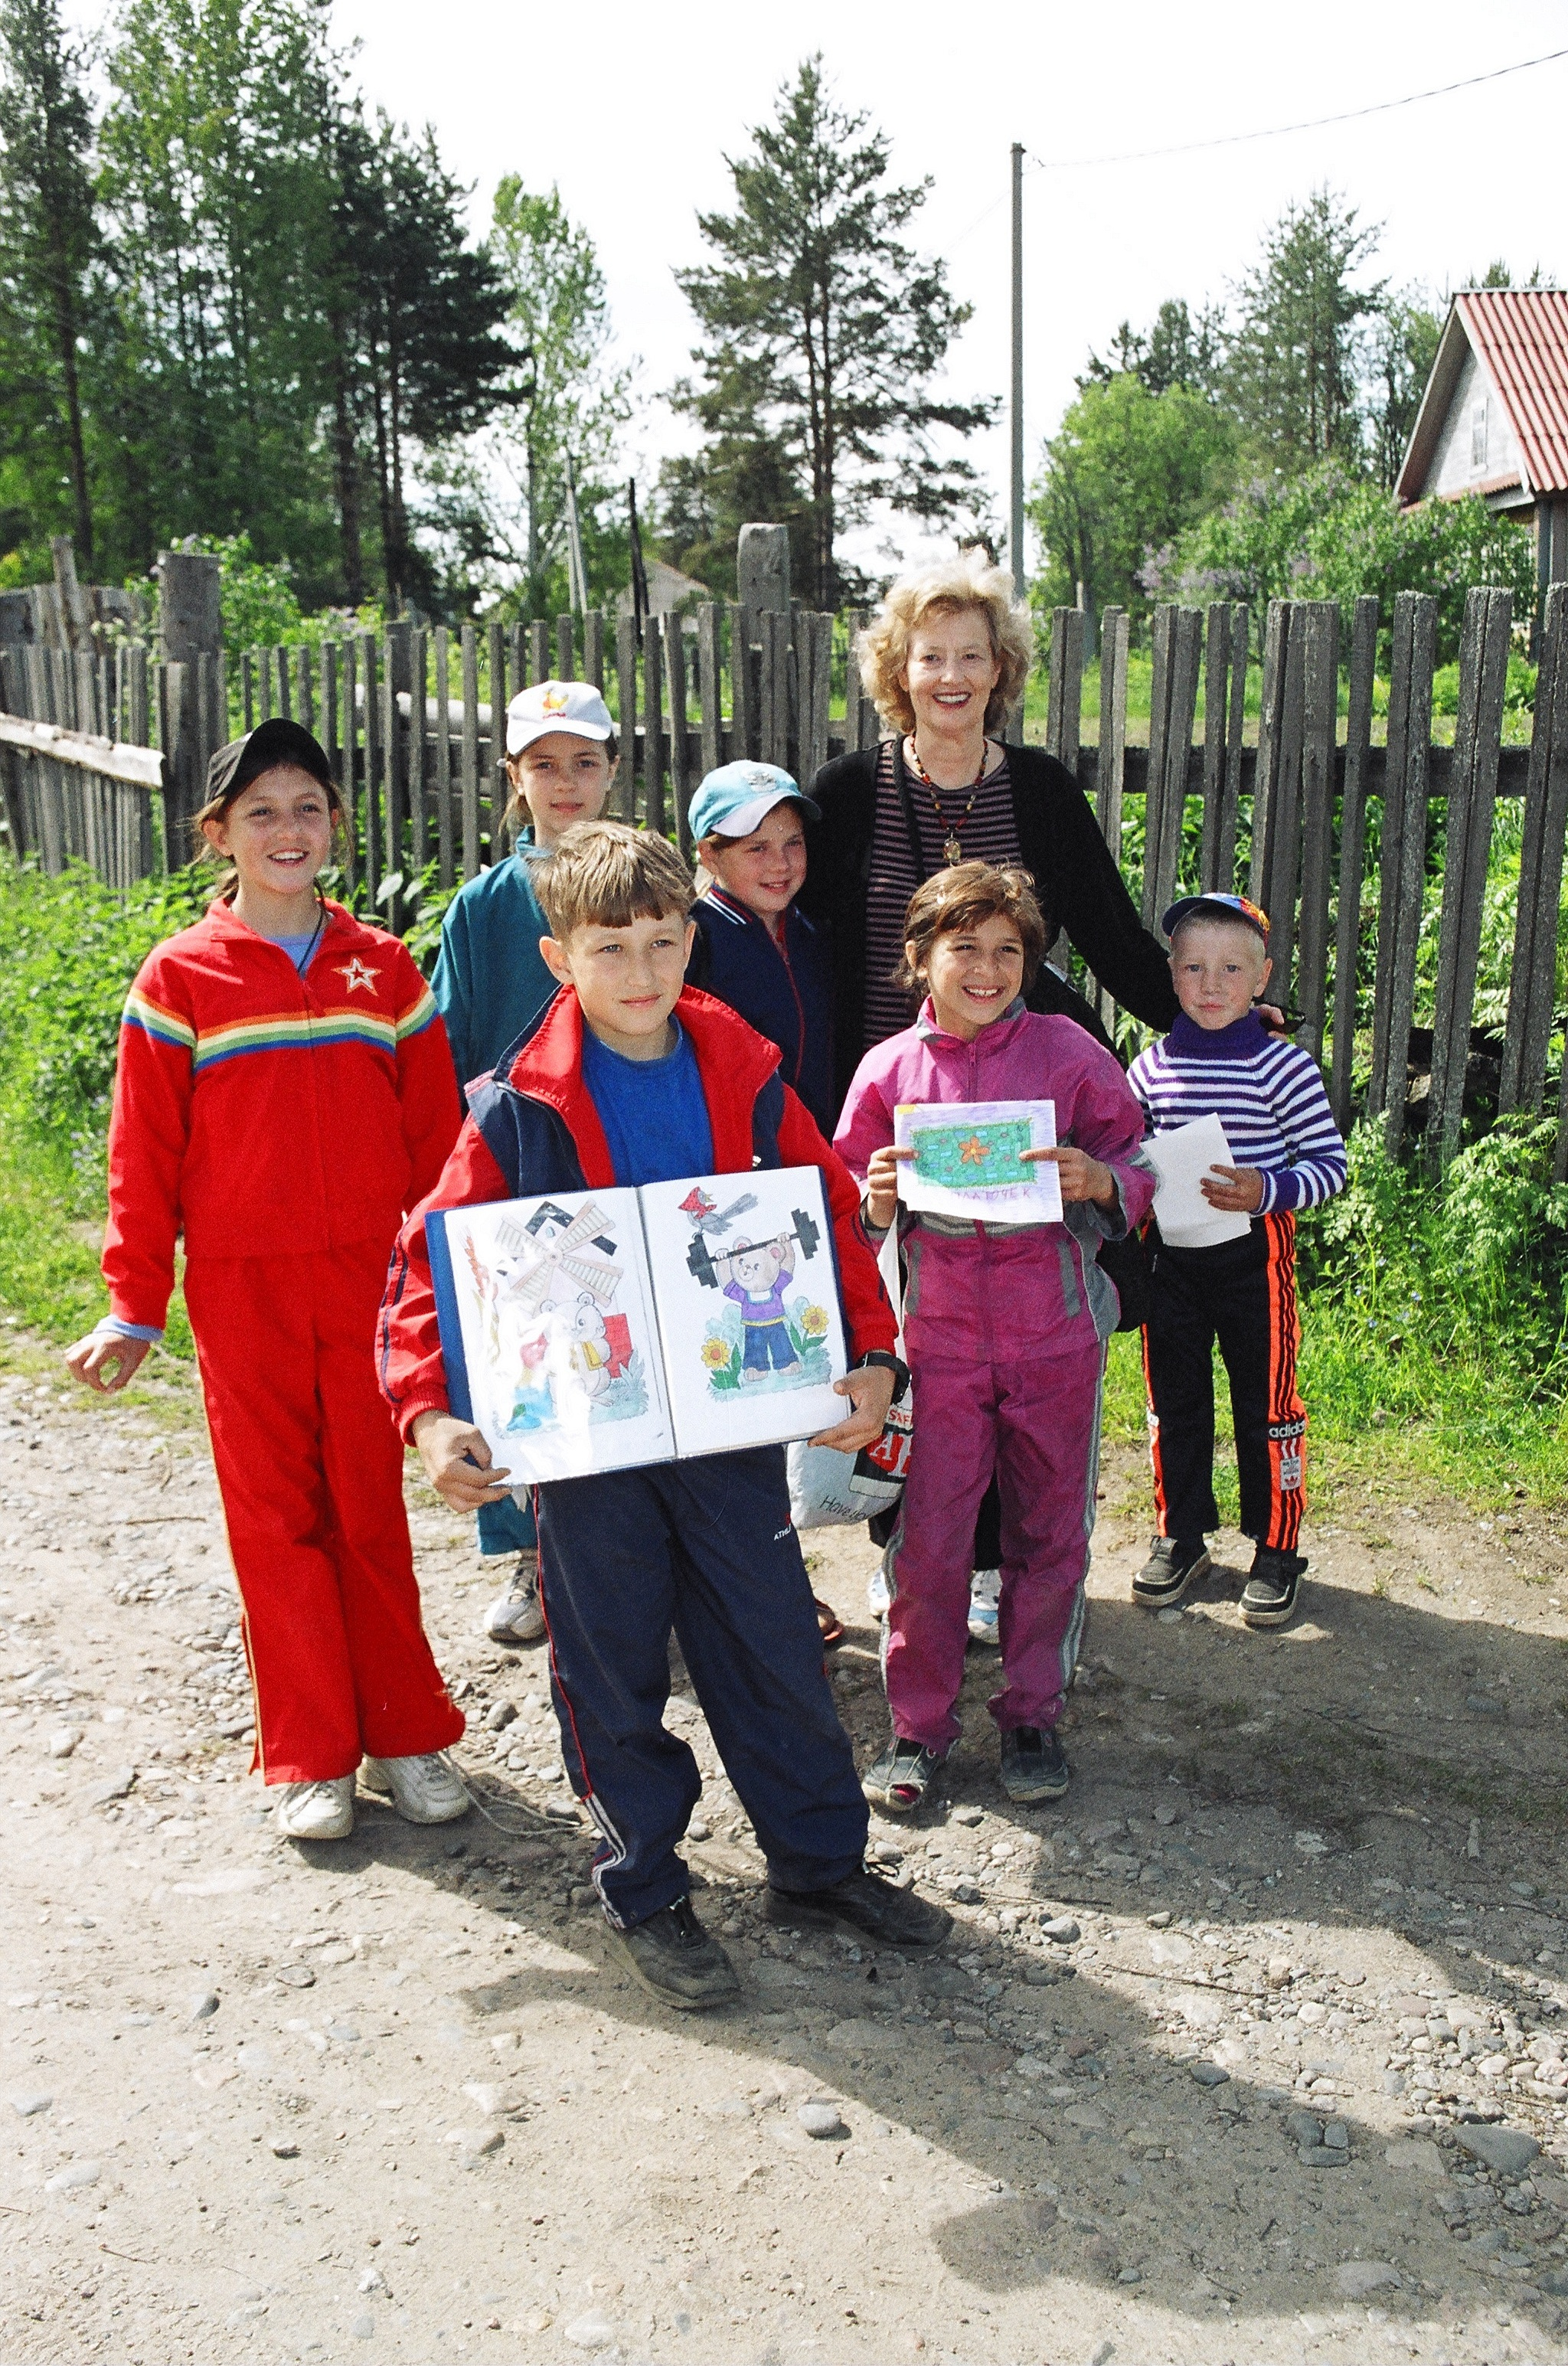 College Church missionary Anita Deyneka and some of her young Ukrainian friends.